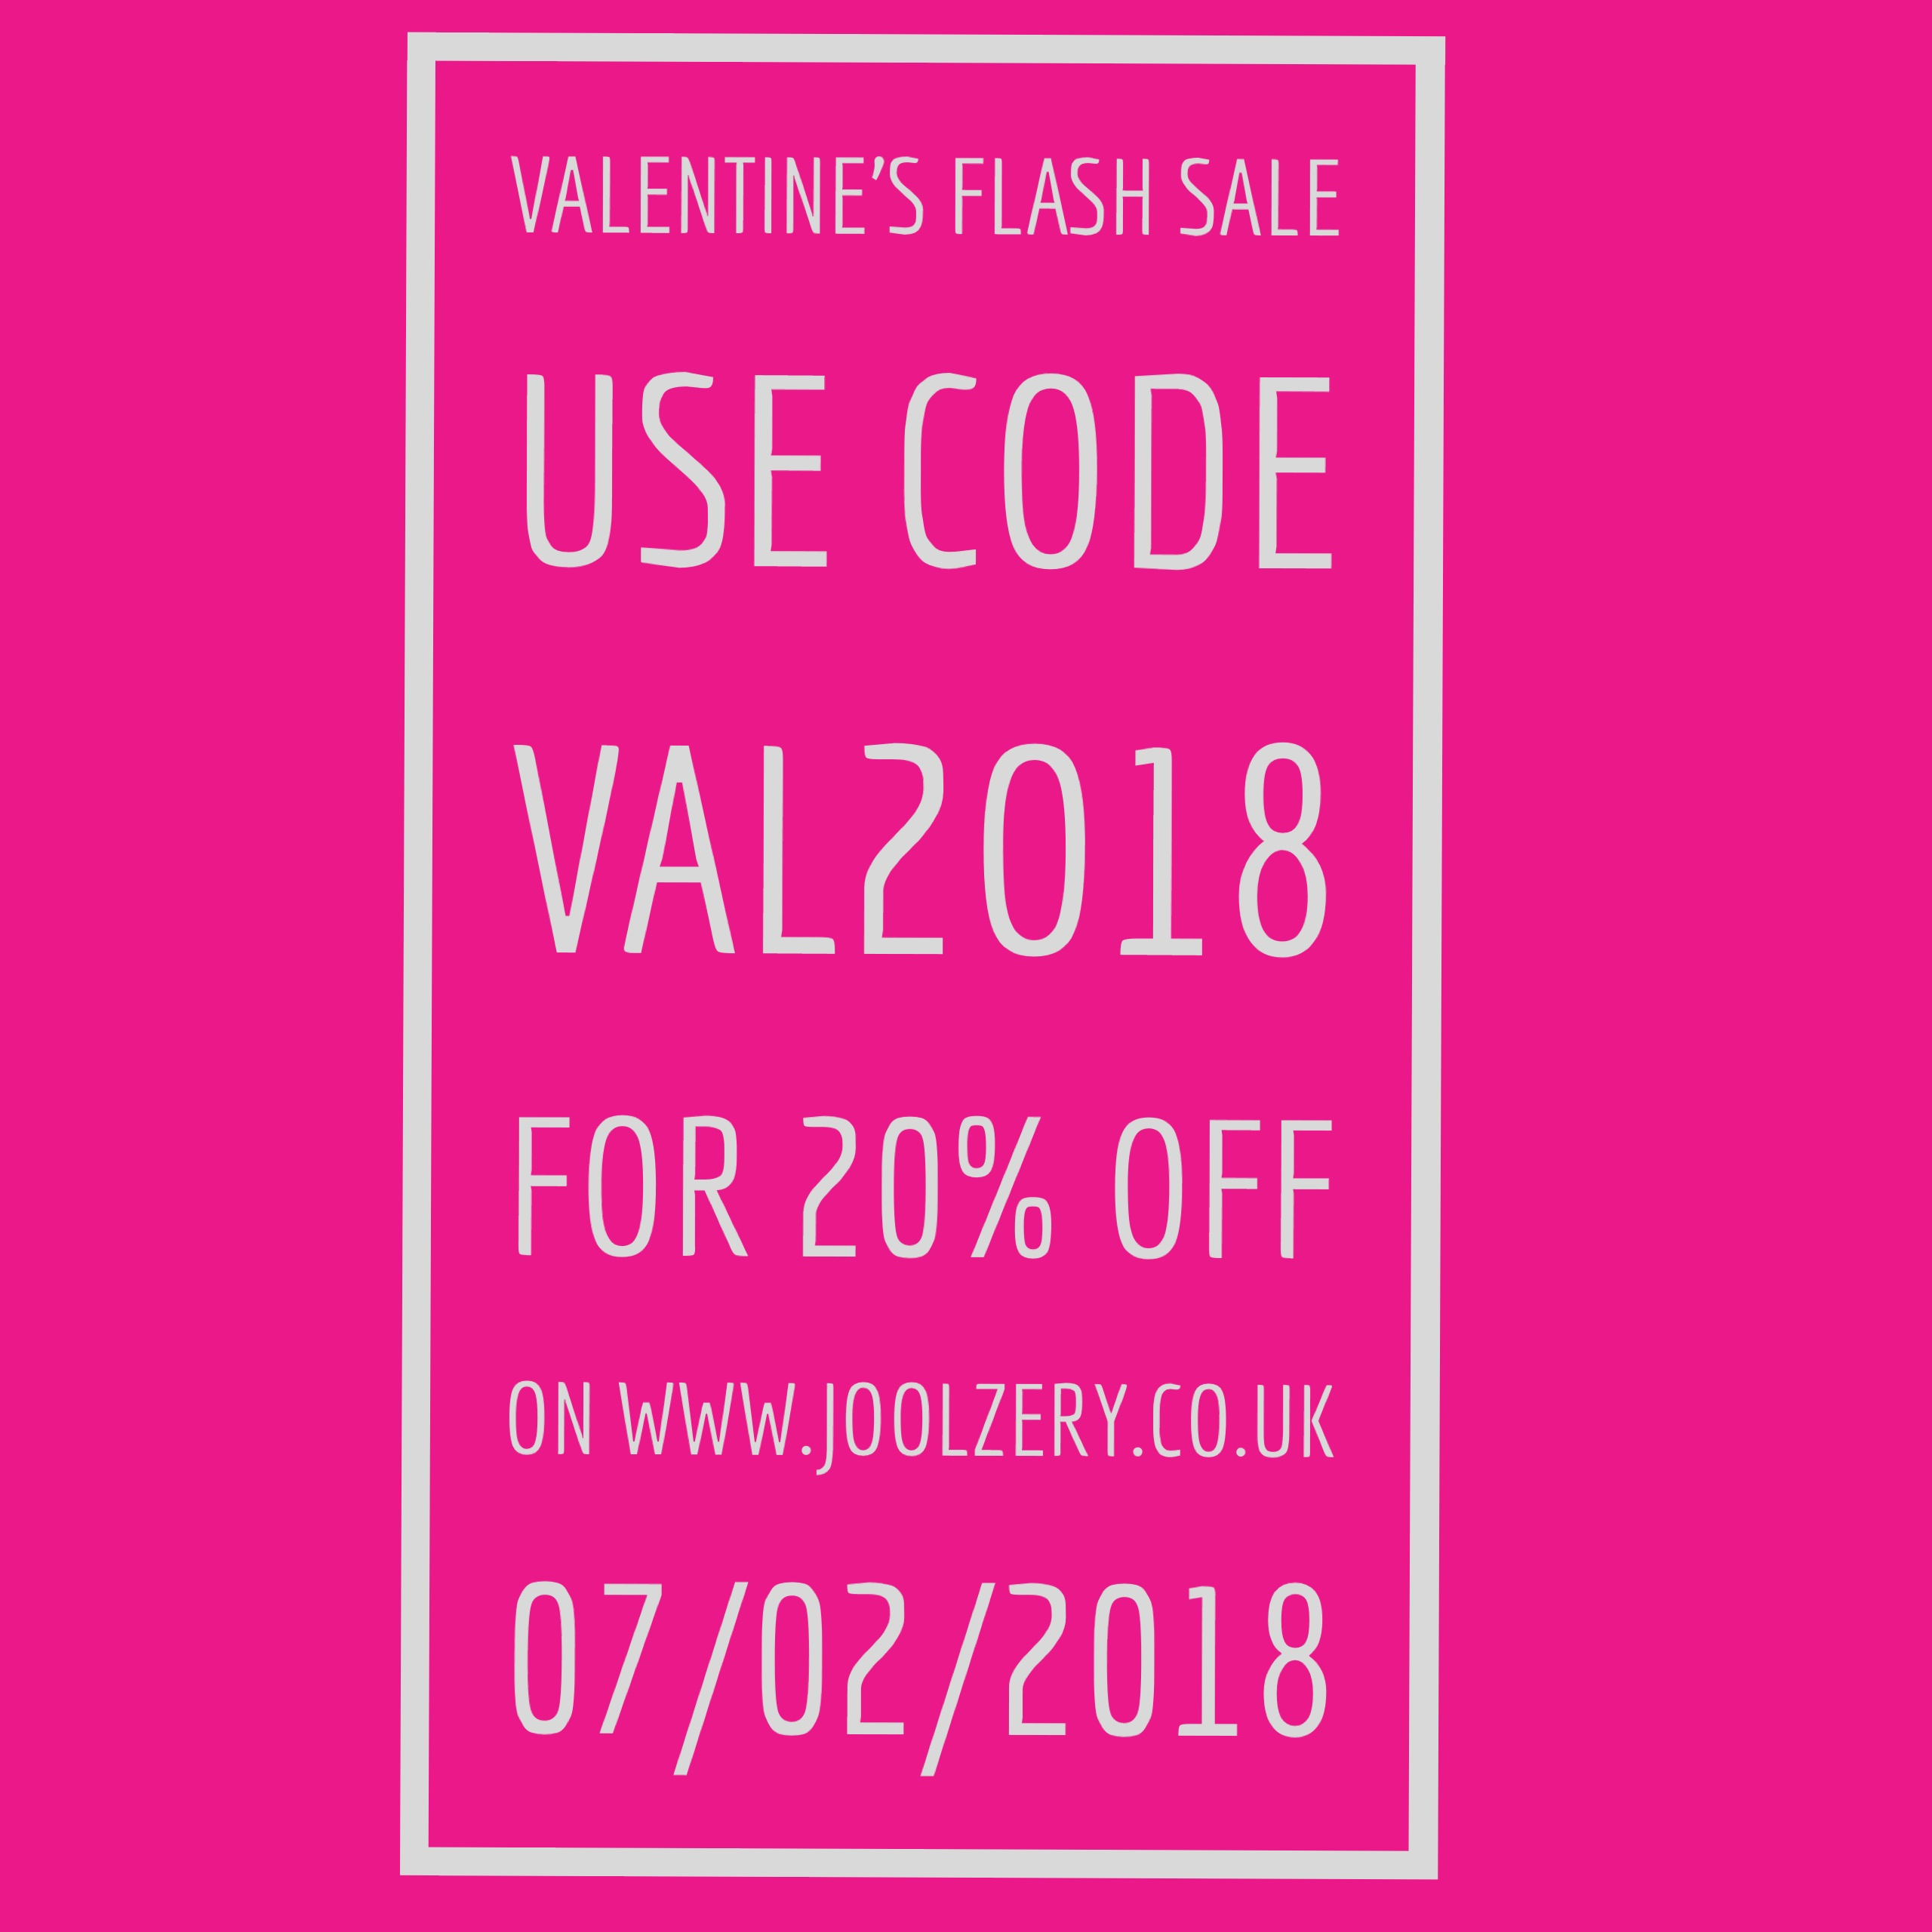 Joolzery Valentines Days Flash Sale Code